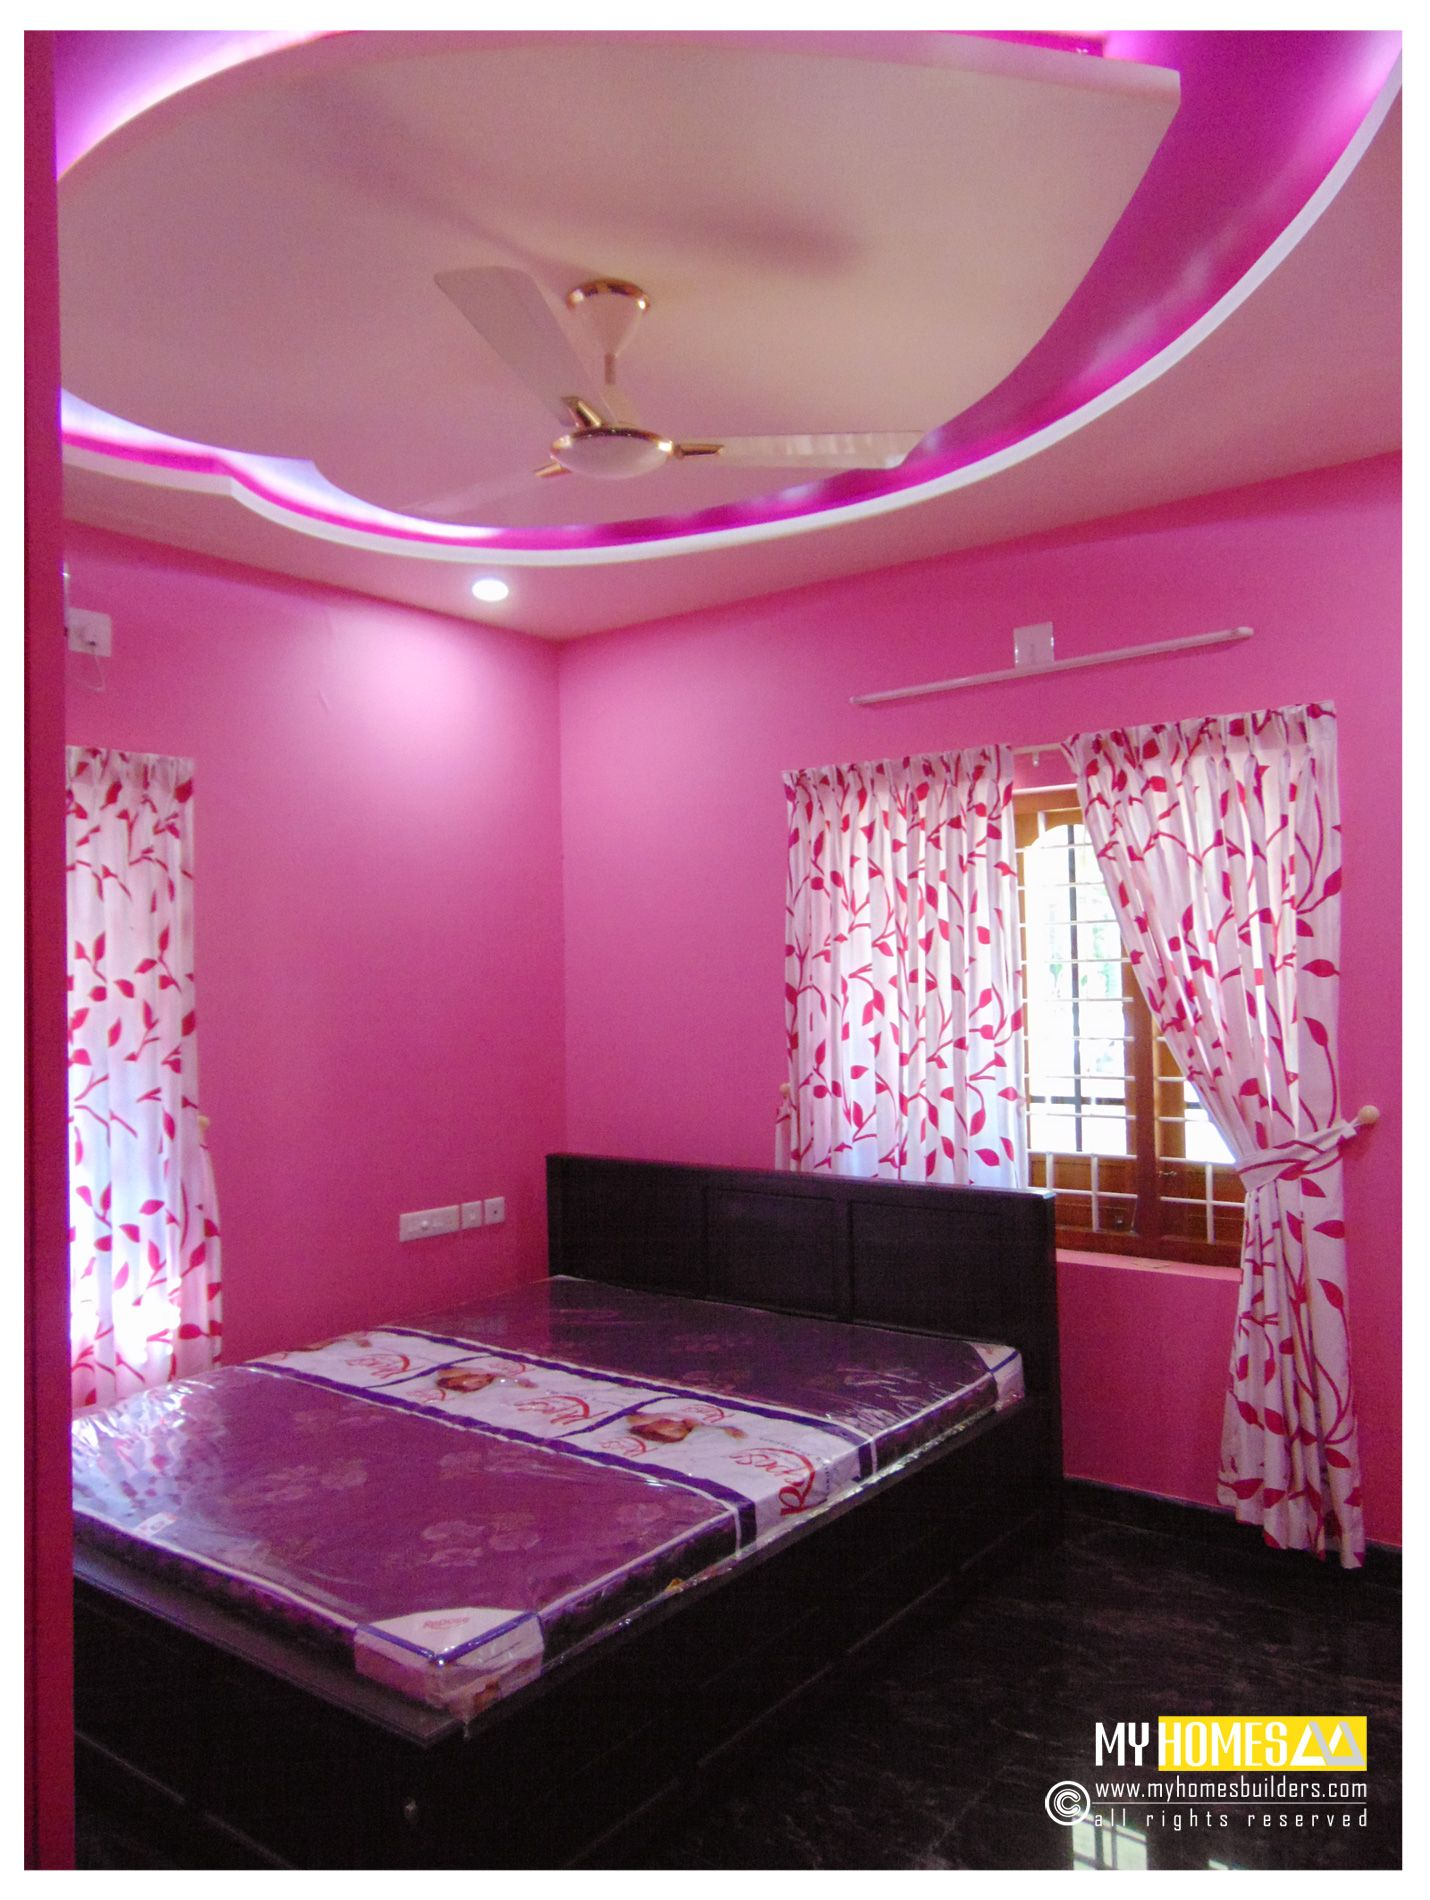 Kerala bedroom interior designs best bed room interior for Bed styles for small rooms